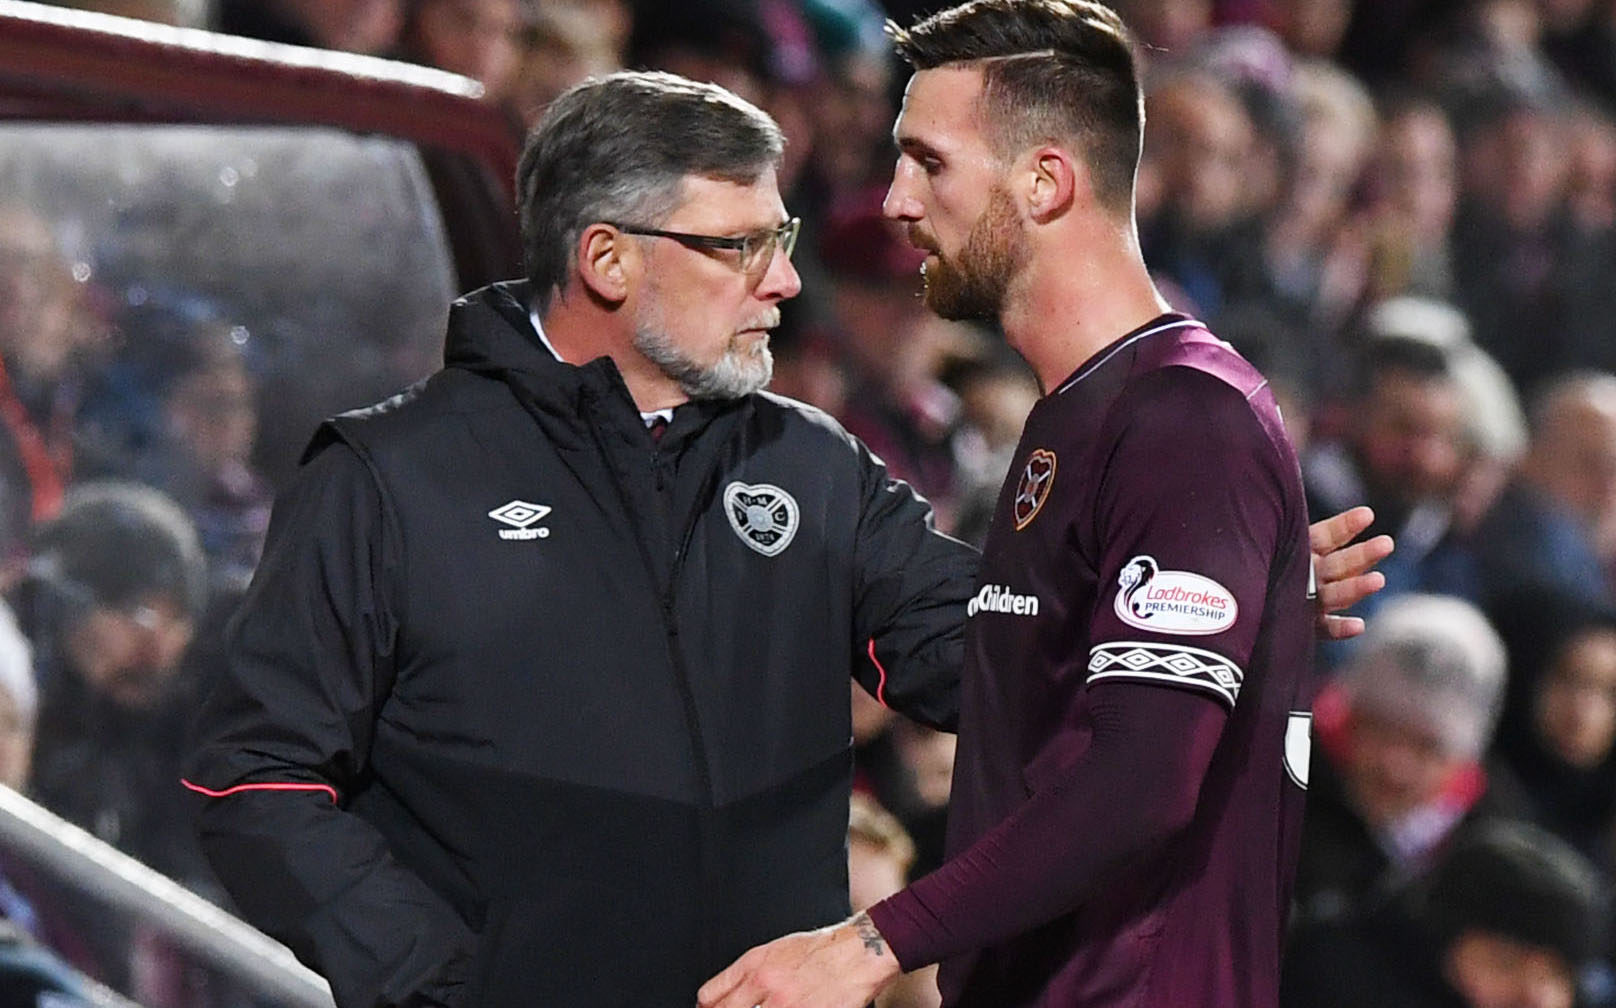 Hearts' David Vanecek walks past manager Craig Levein after being substituted in the first half (SNS Group)